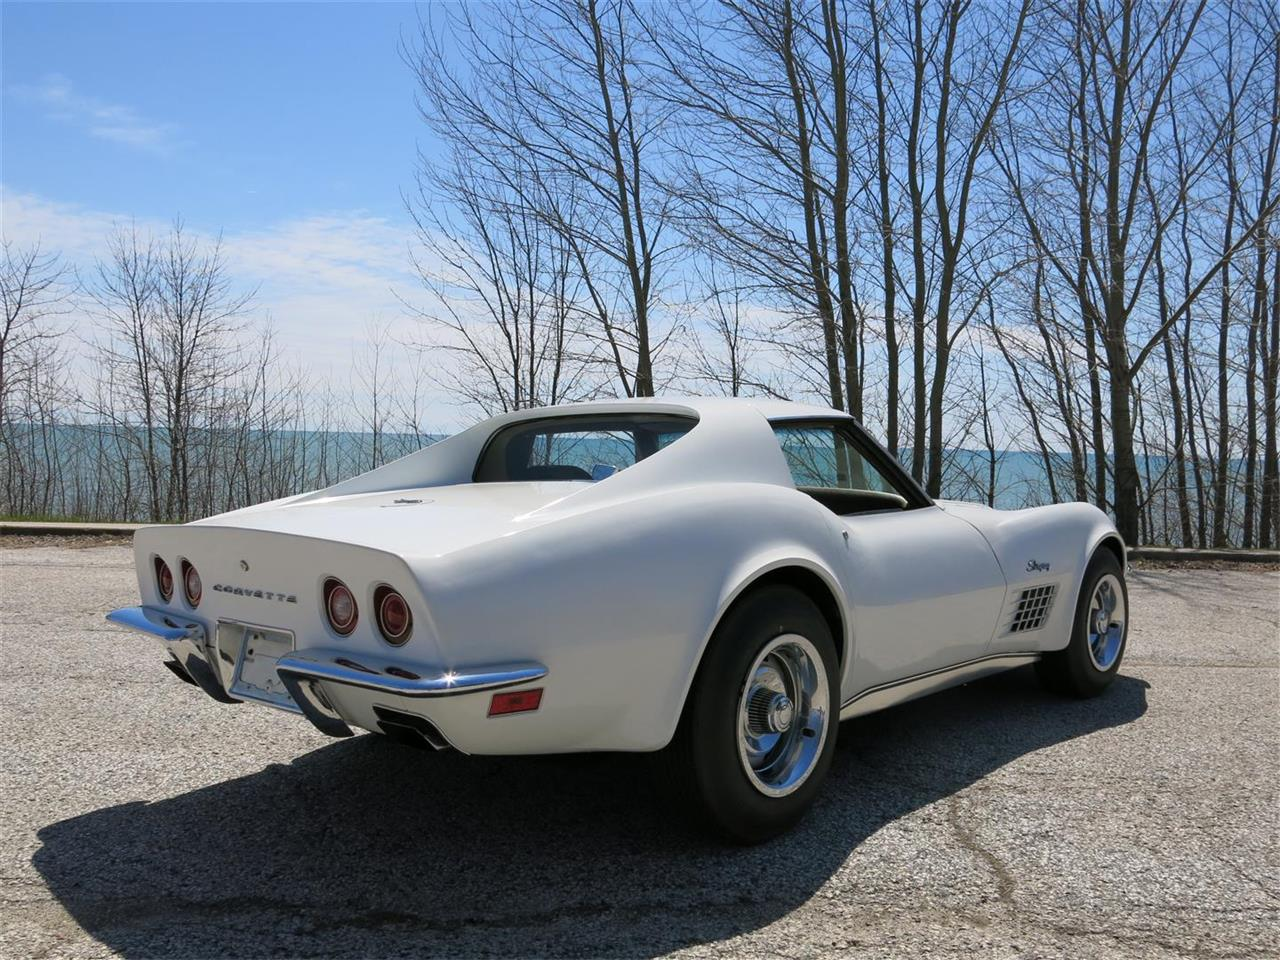 Large Picture of '72 Chevrolet Corvette located in Manitowoc Wisconsin - $350,000.00 - Q7LN